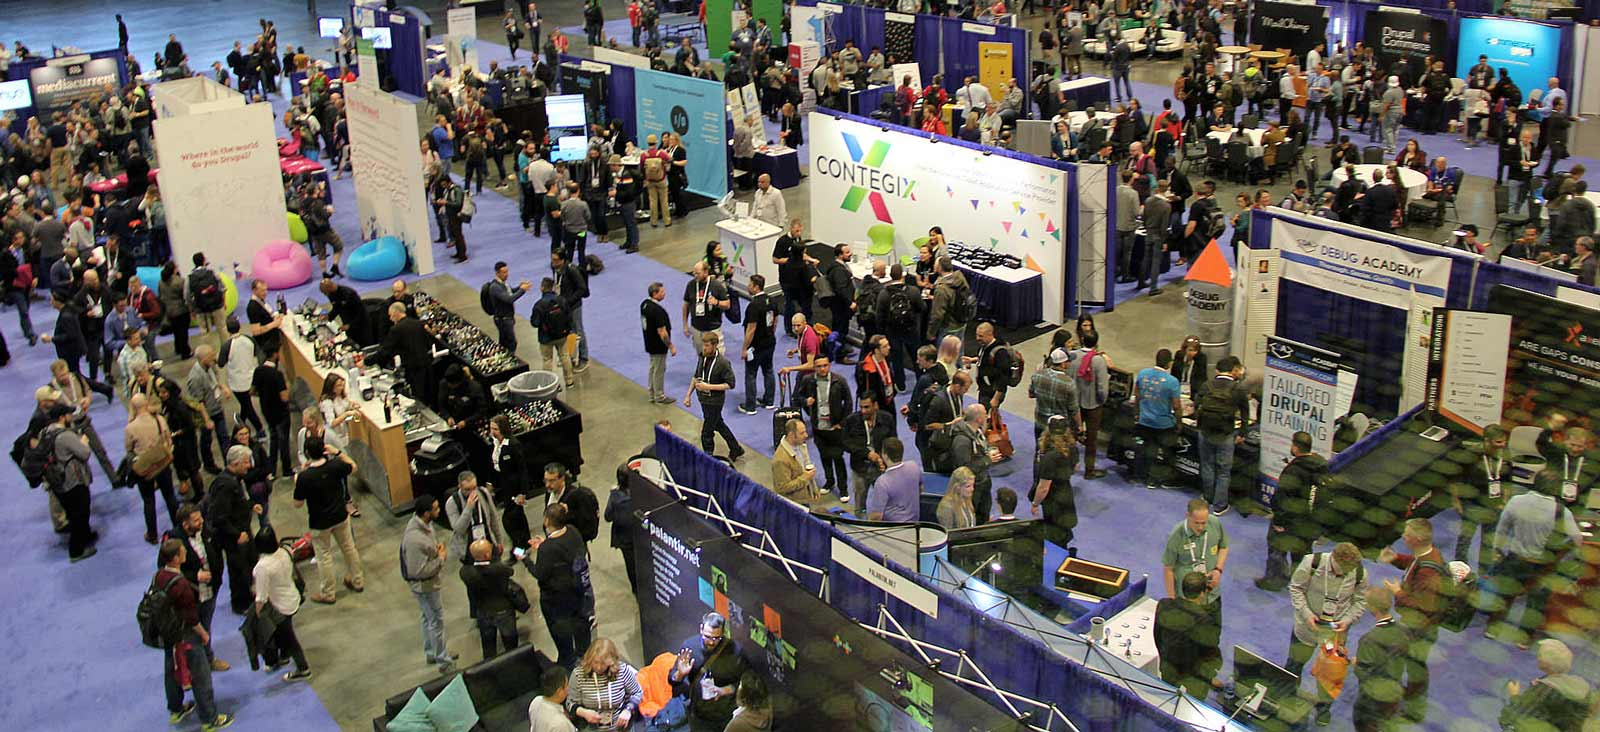 DrupalCon 2018 Exhibitors Hall